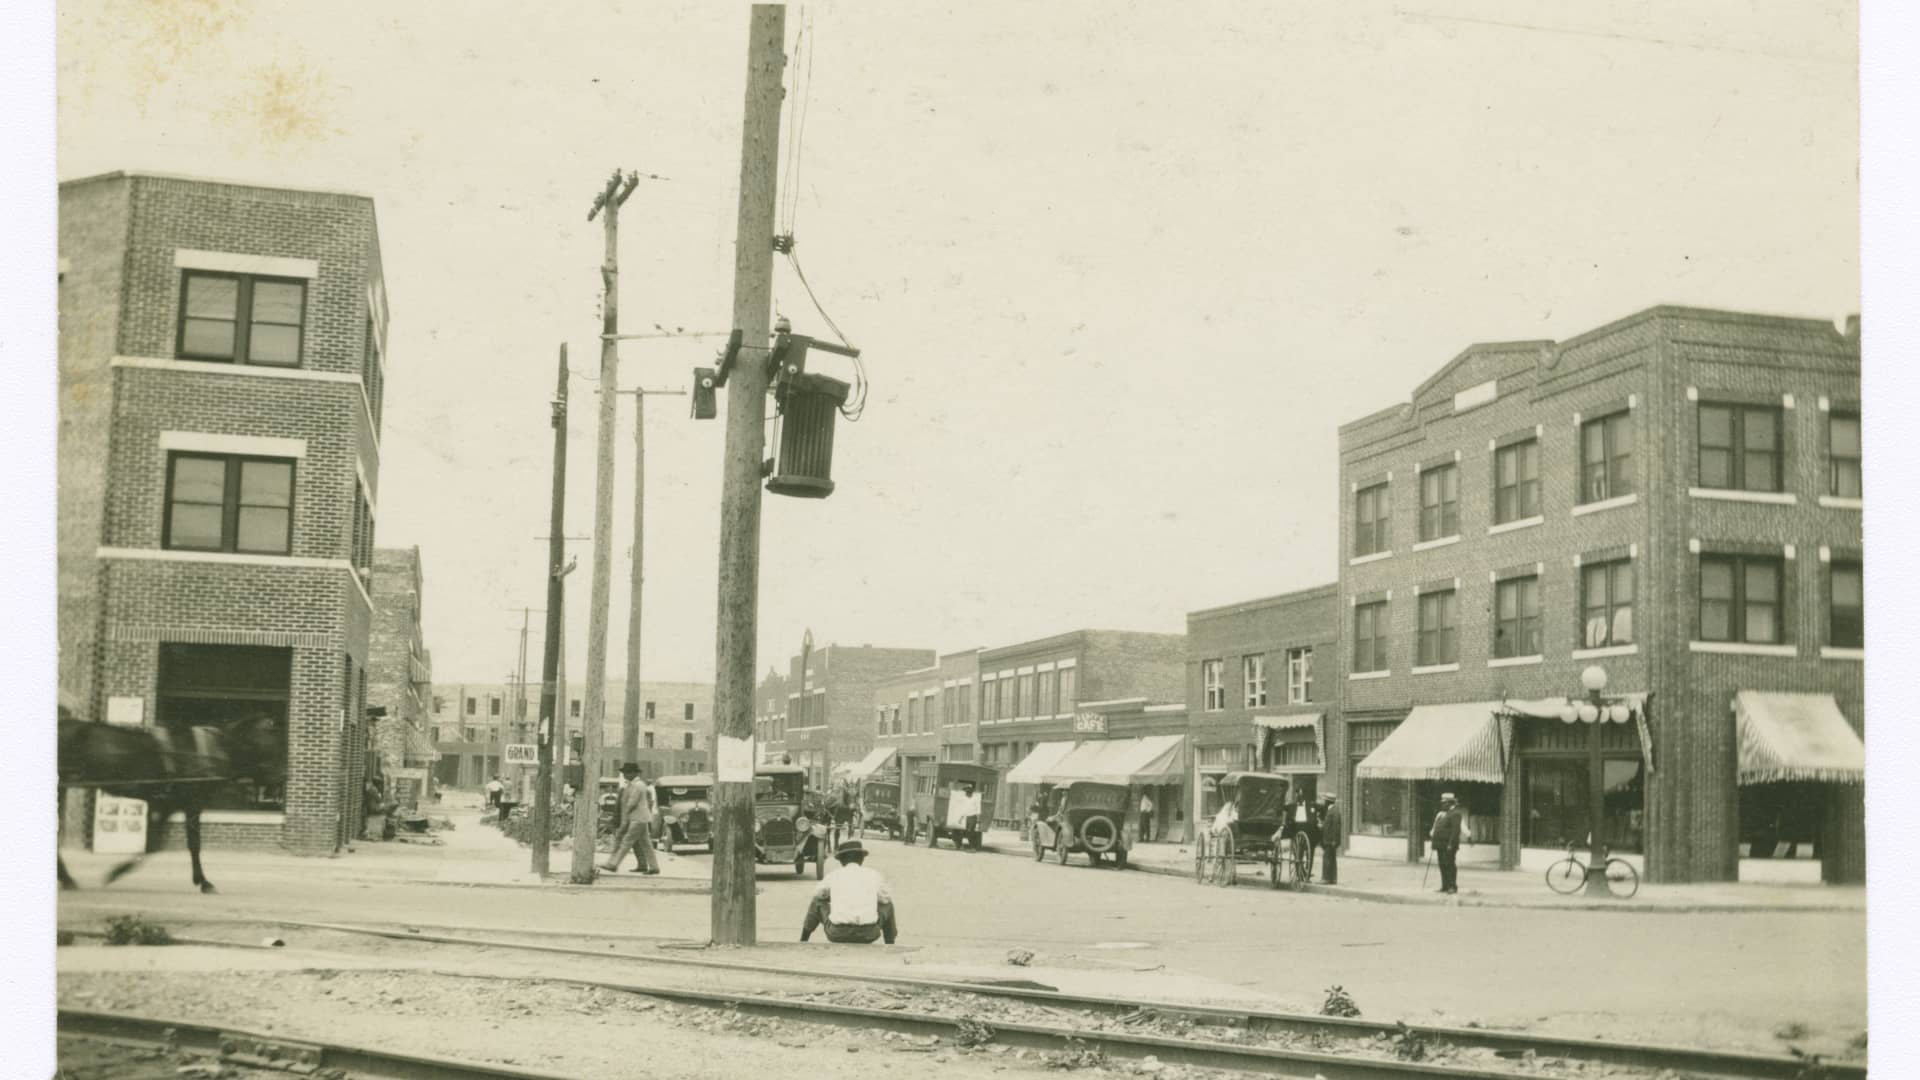 A black and white photograph of the Greenwood district in Tulsa, OK, with residents walking by shopfronts, before 1921.